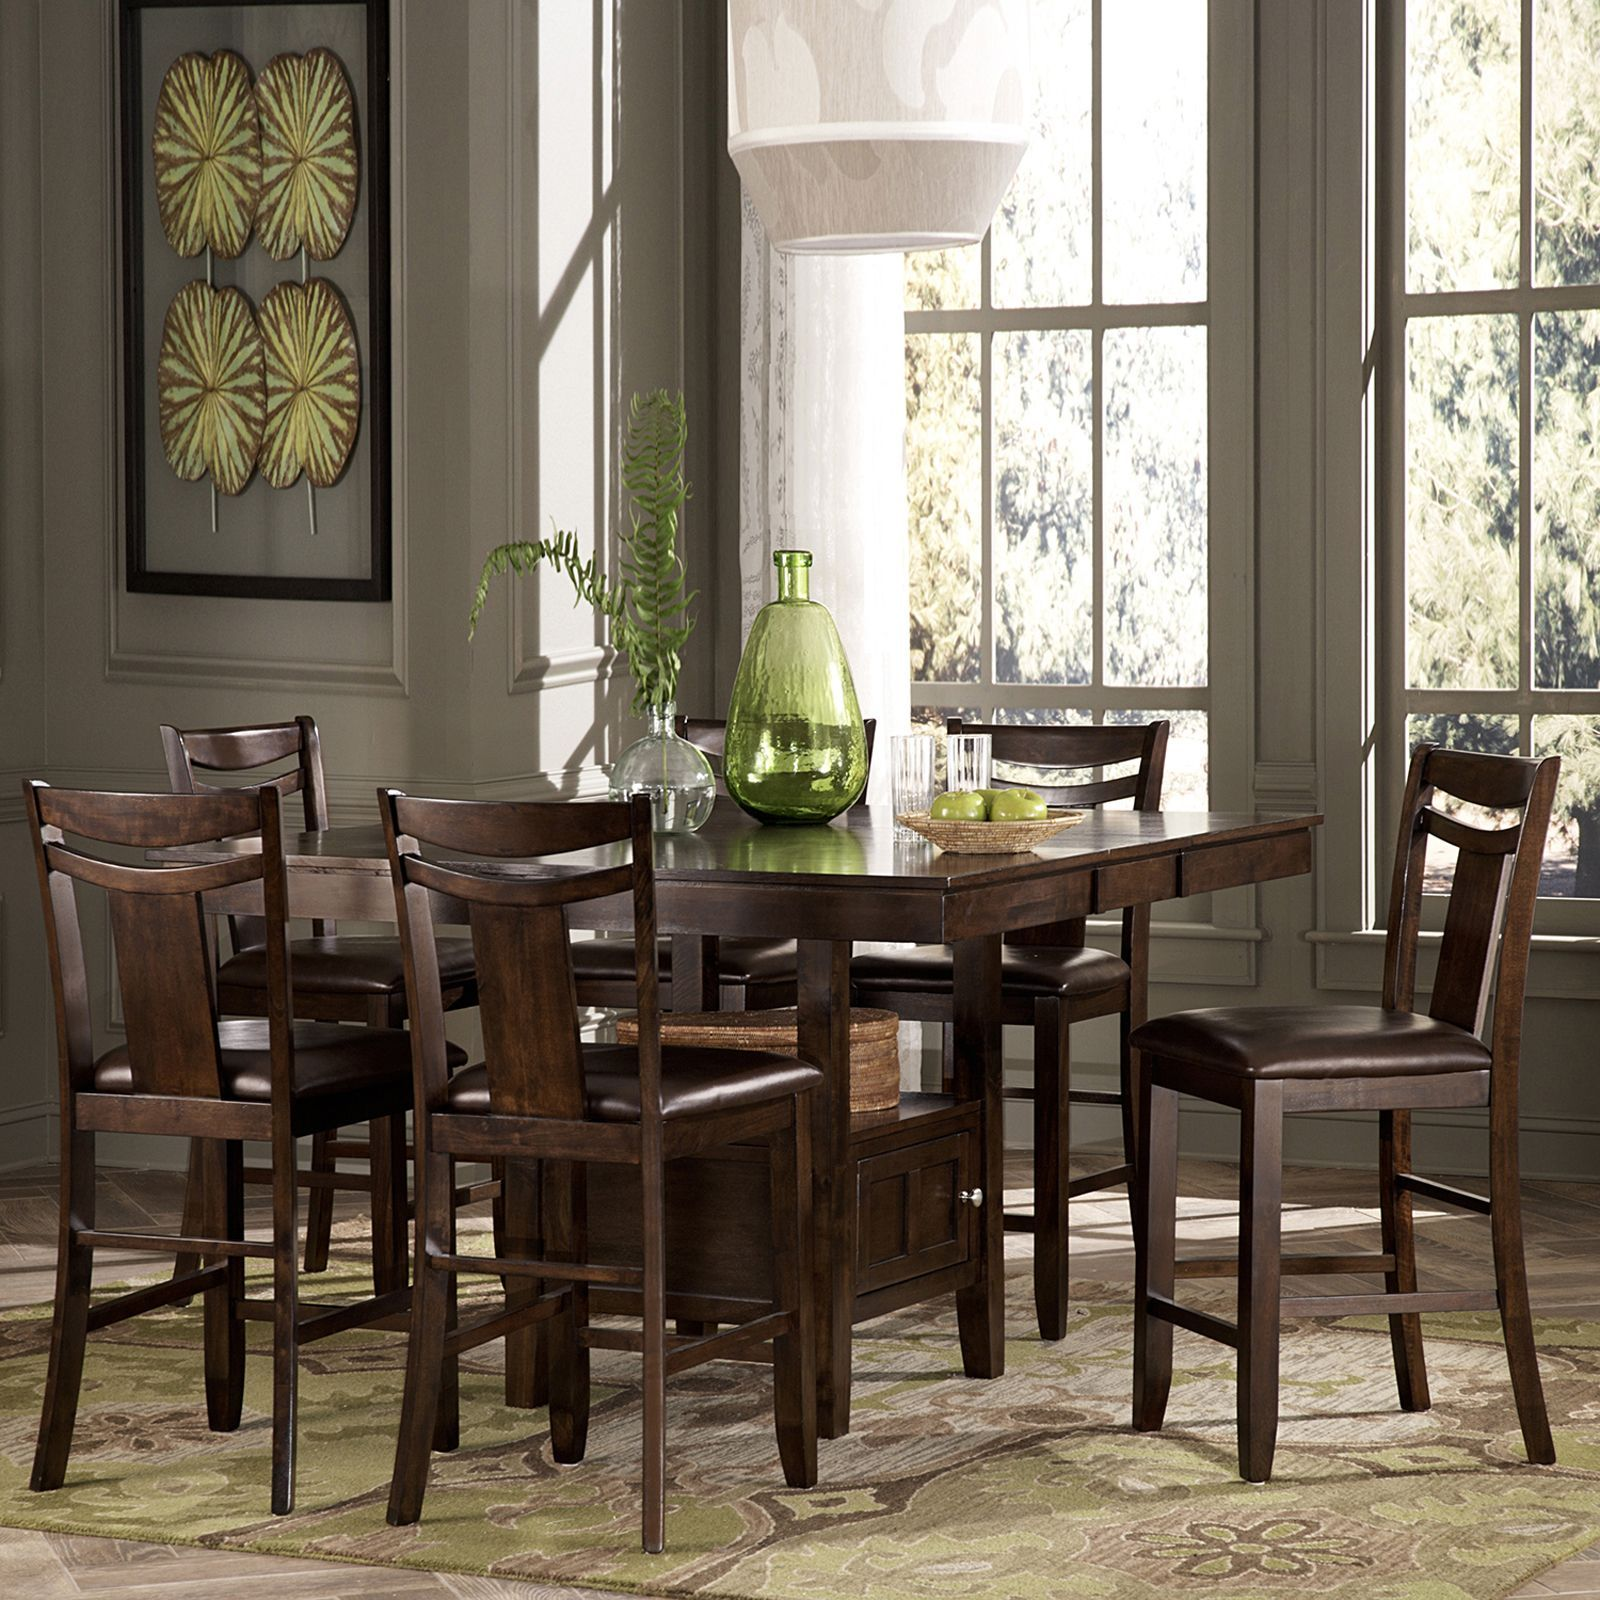 Marsden Rustic Brown Mission Counter Height Extending Dining Set by  TRIBECCA HOME by INSPIRE Q